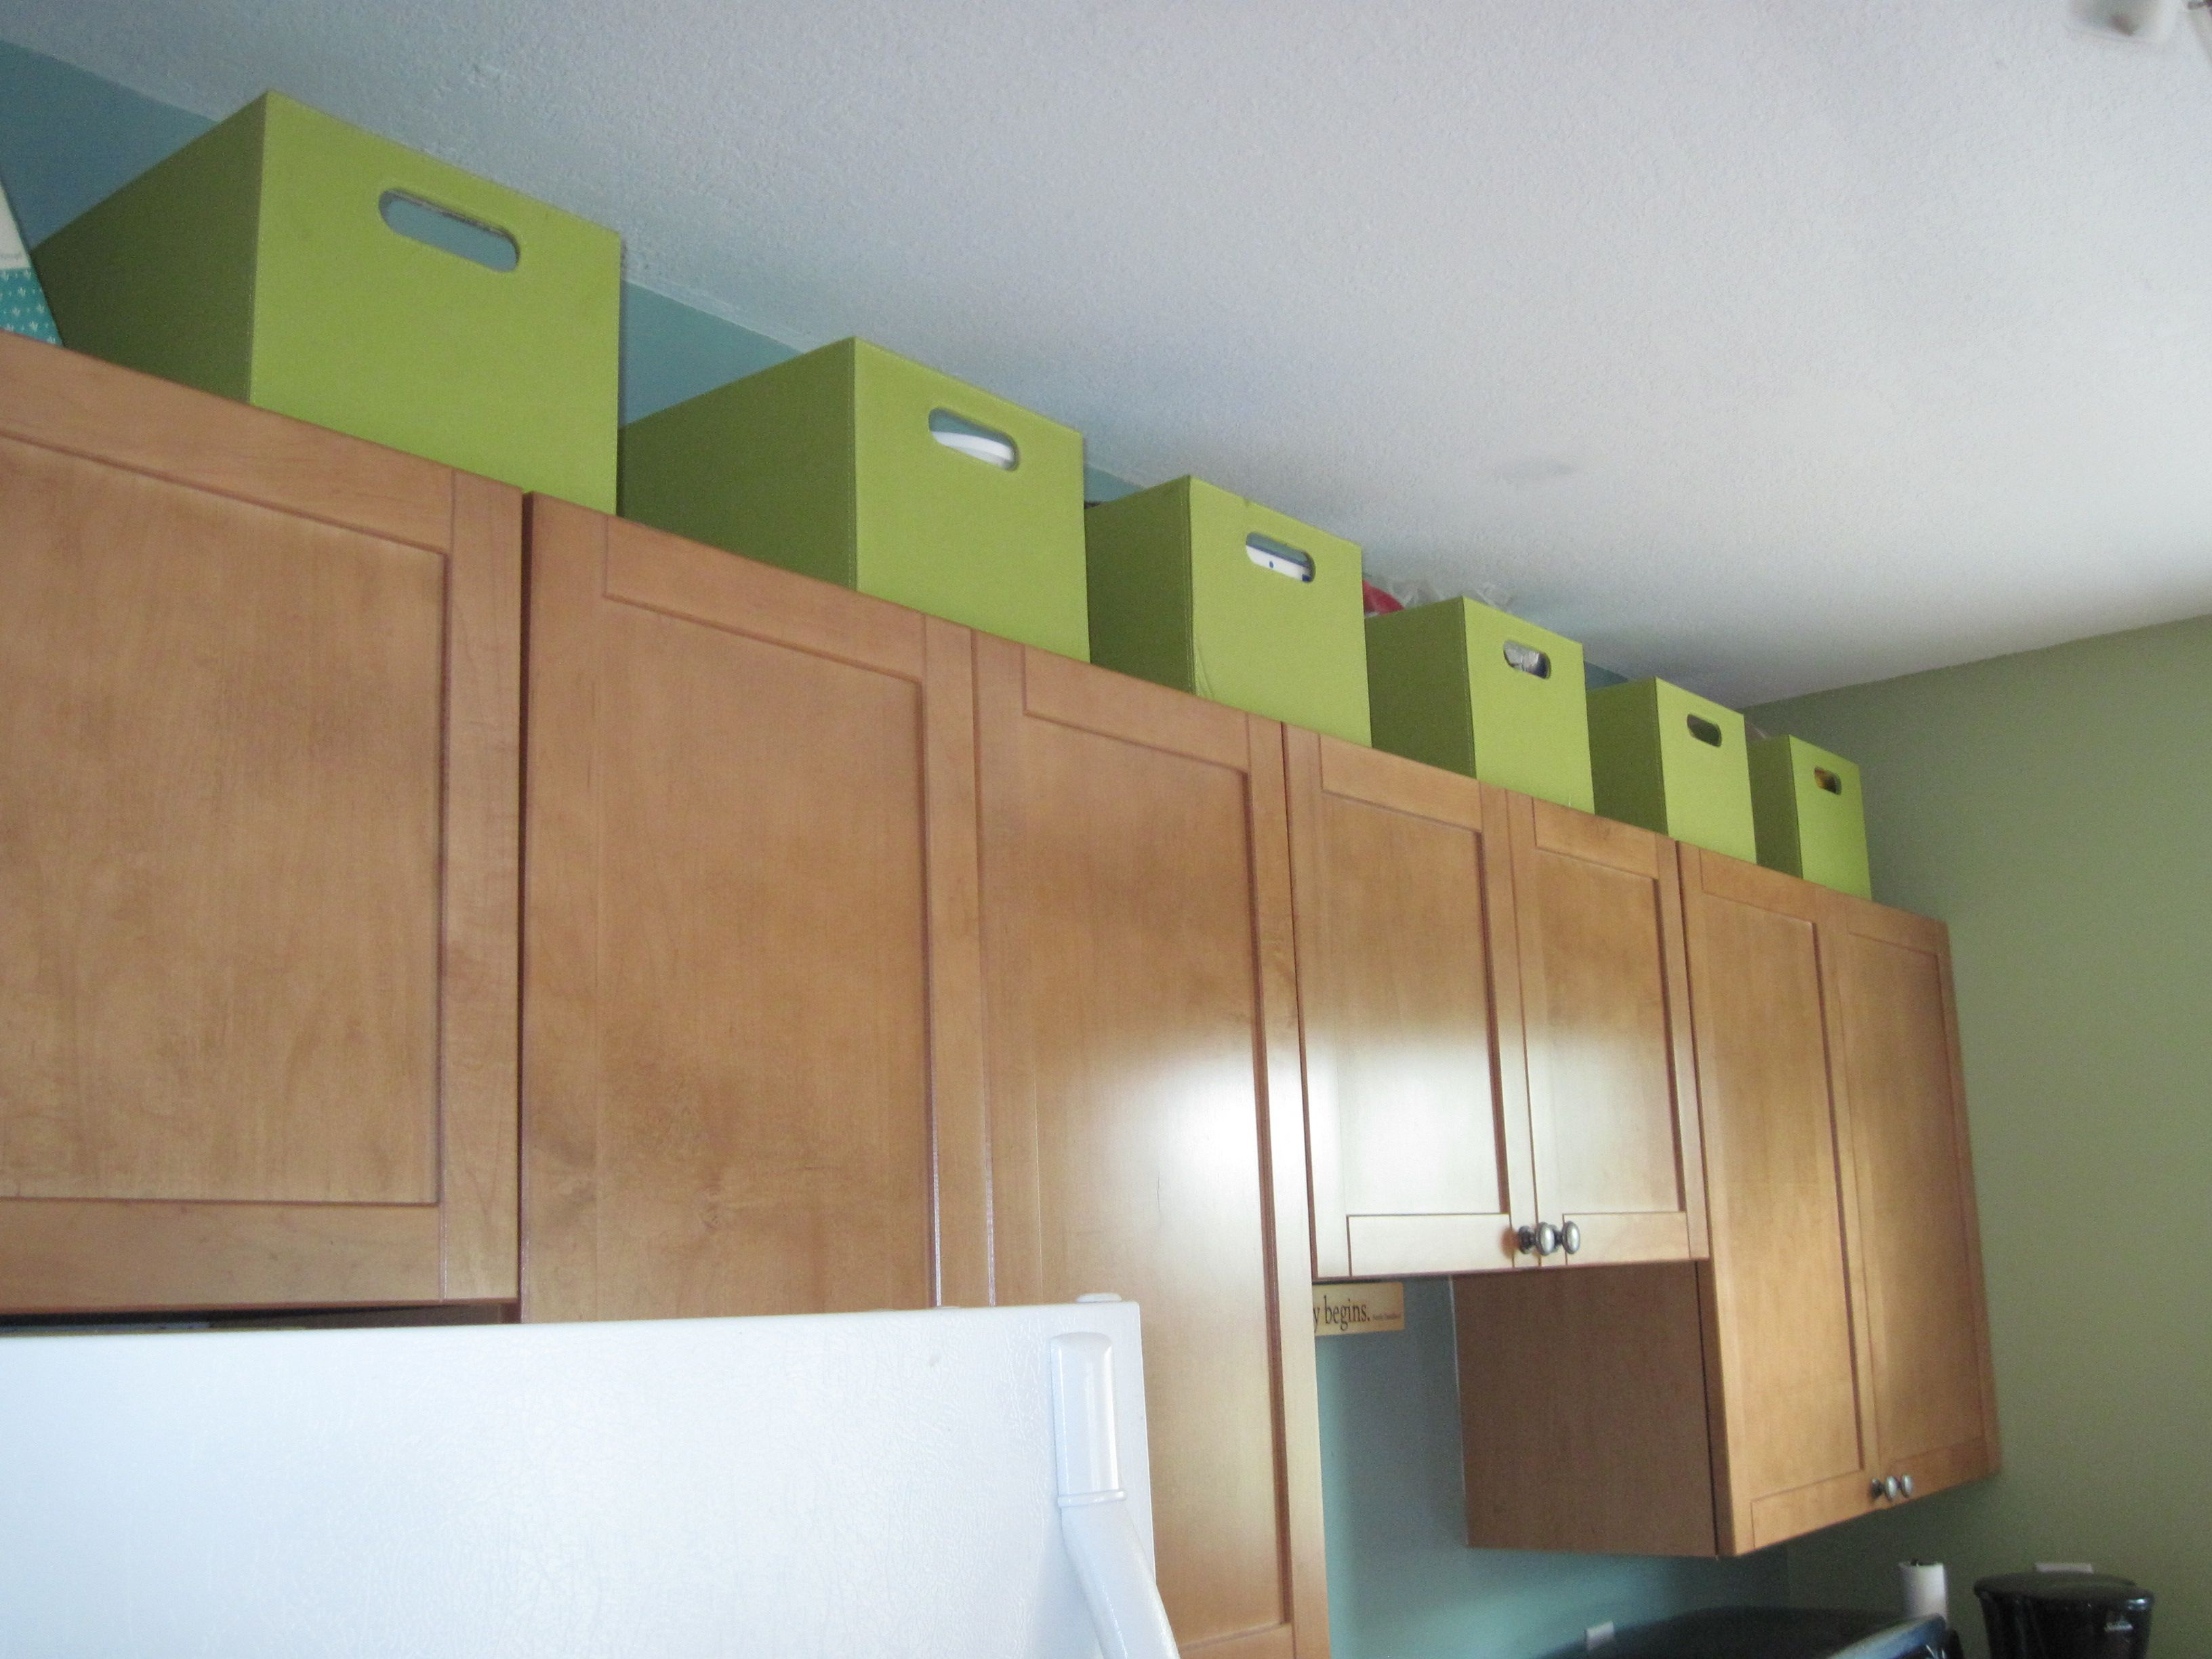 Use the space above kitchen cabinets for extra storage in a small space. Storage bins reduce visual clutter. : extra kitchen cabinets - hauntedcathouse.org